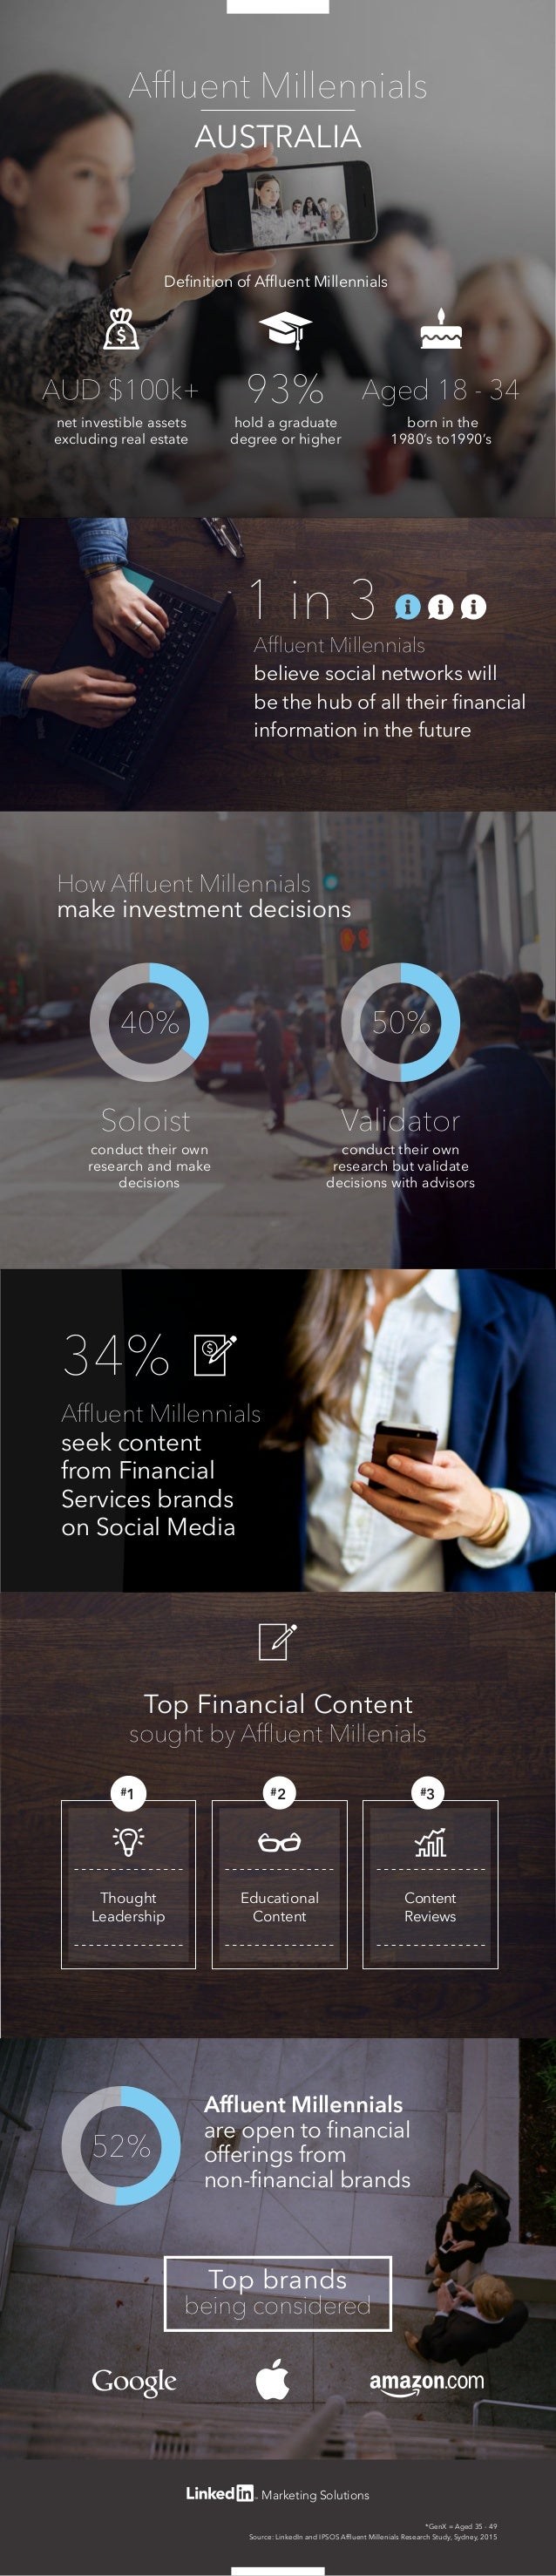 Marketing Solutions AUD $100k+ Aged 18 - 3493% Definition of Affluent Millennials born in the 1980's to1990's net investible...